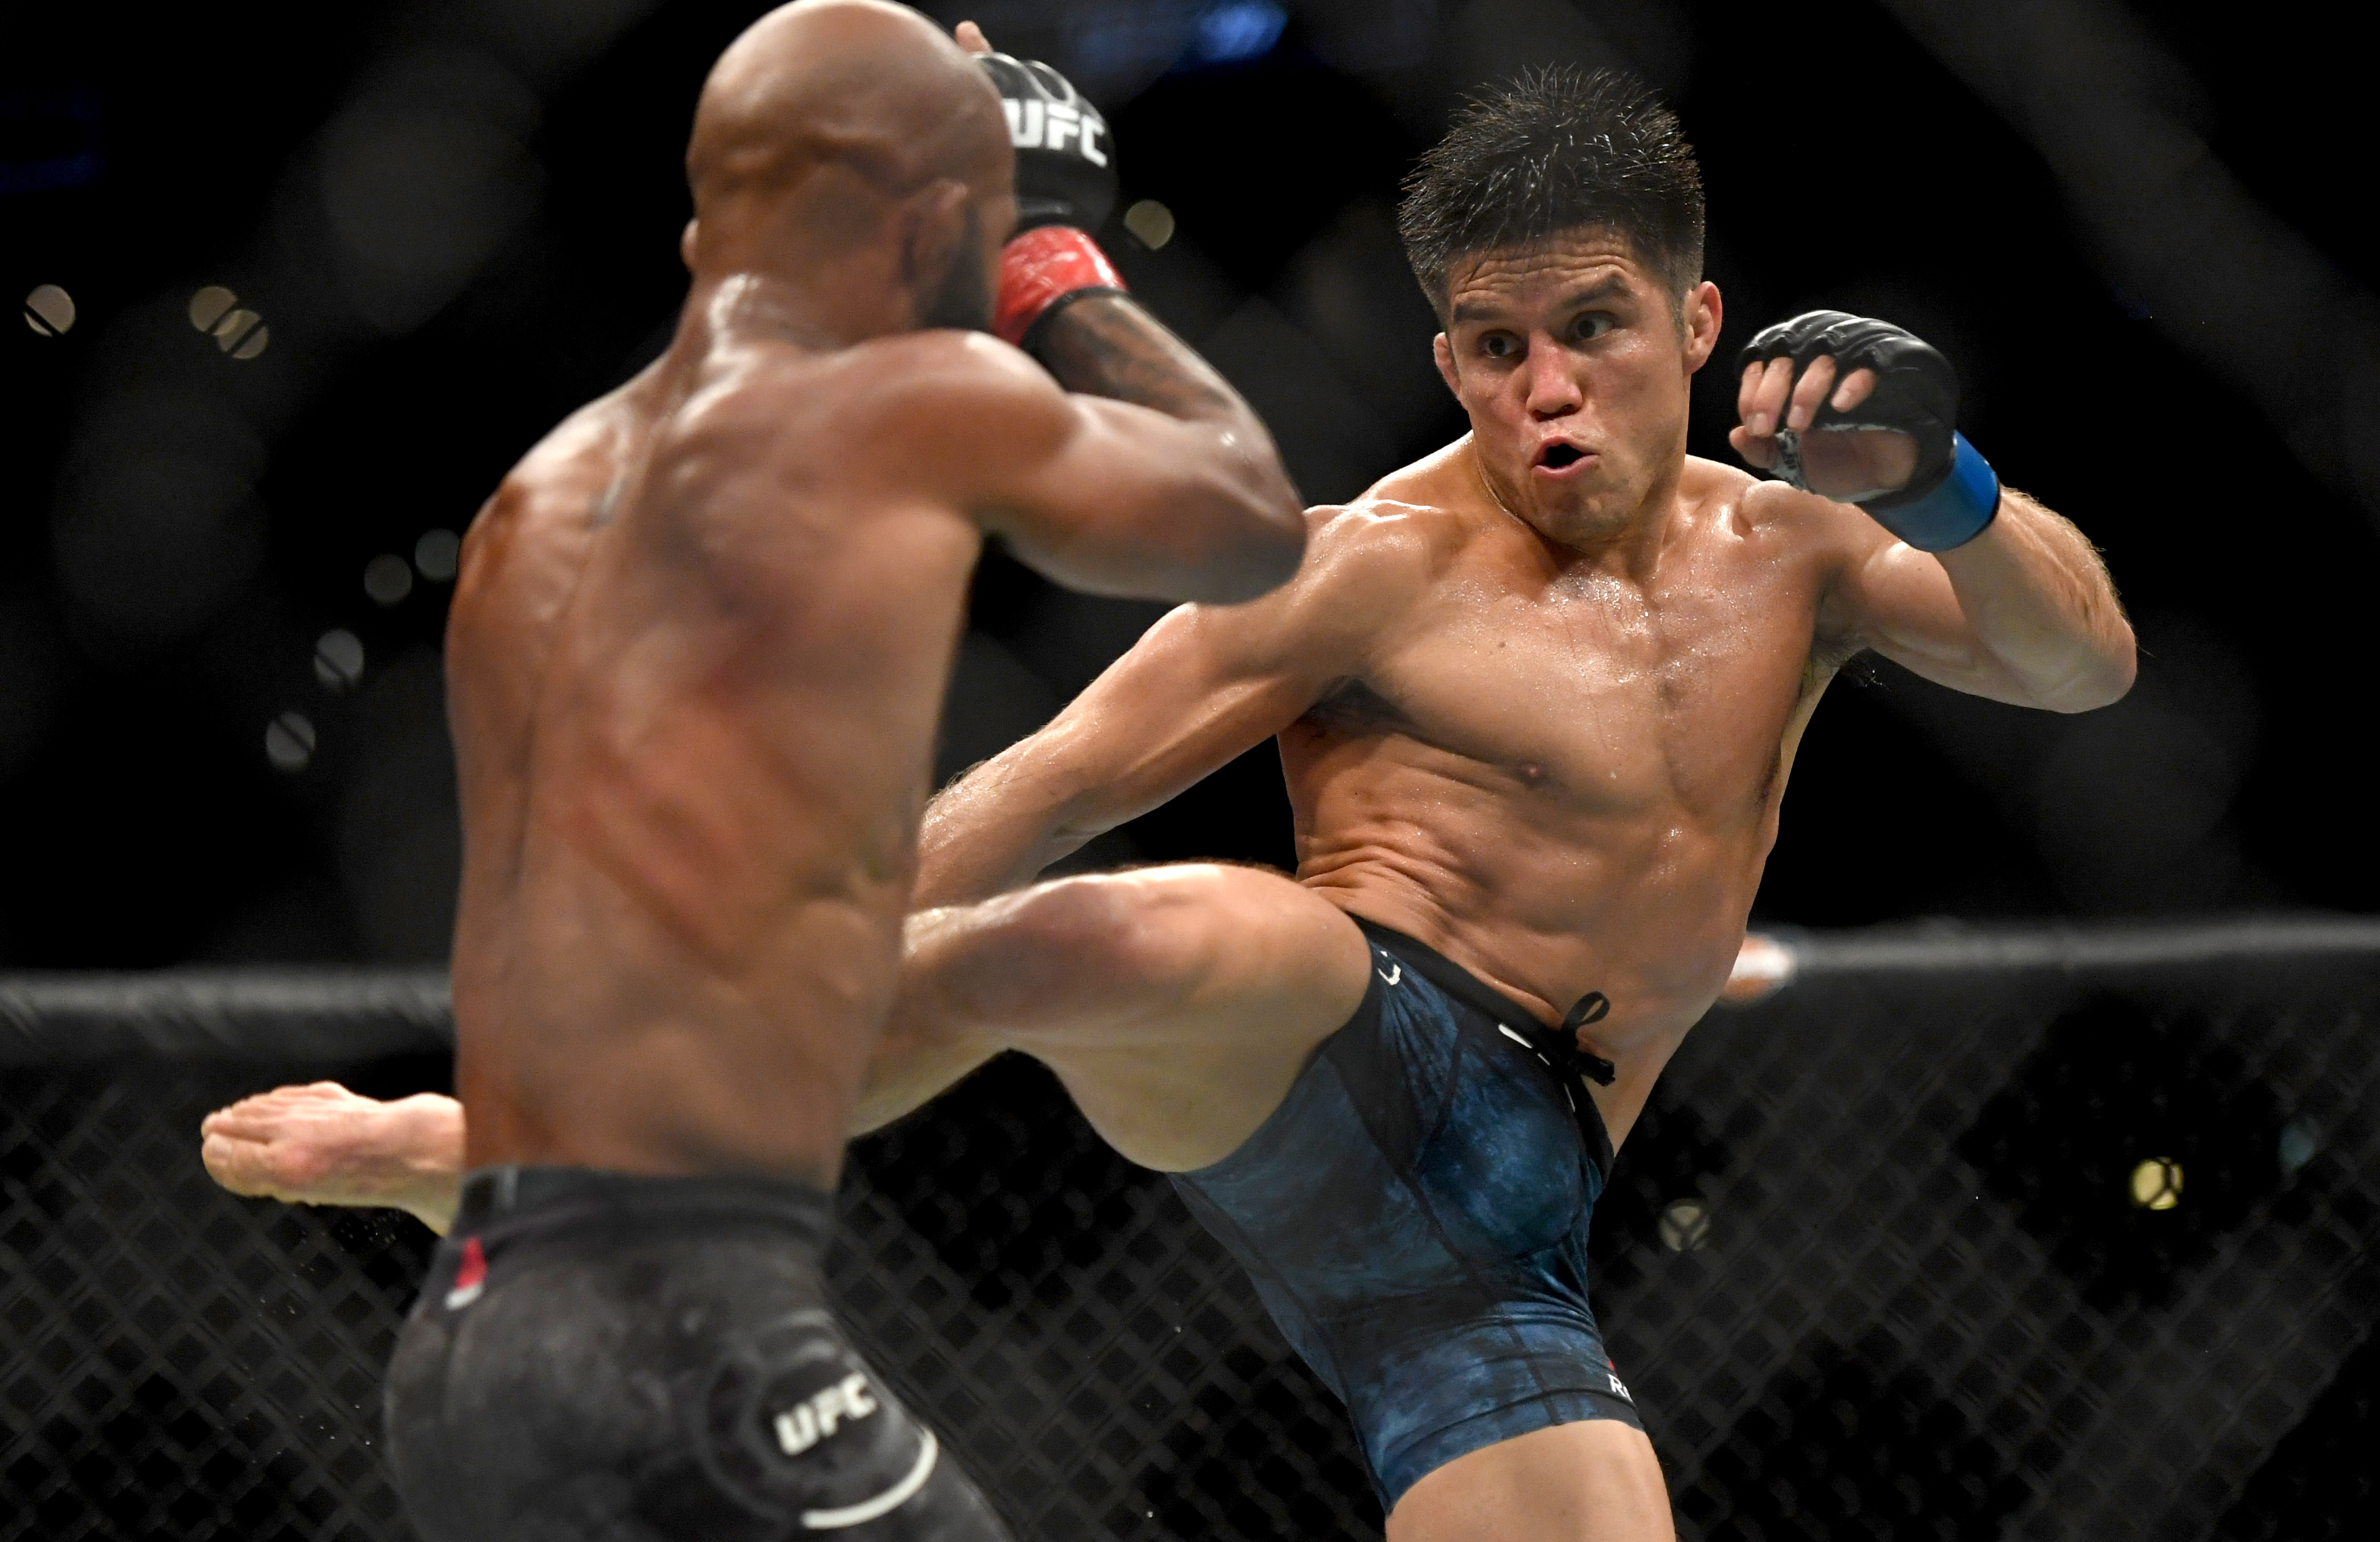 video review : Demetrious Johnson versus Henry Cejudo at UFC 227